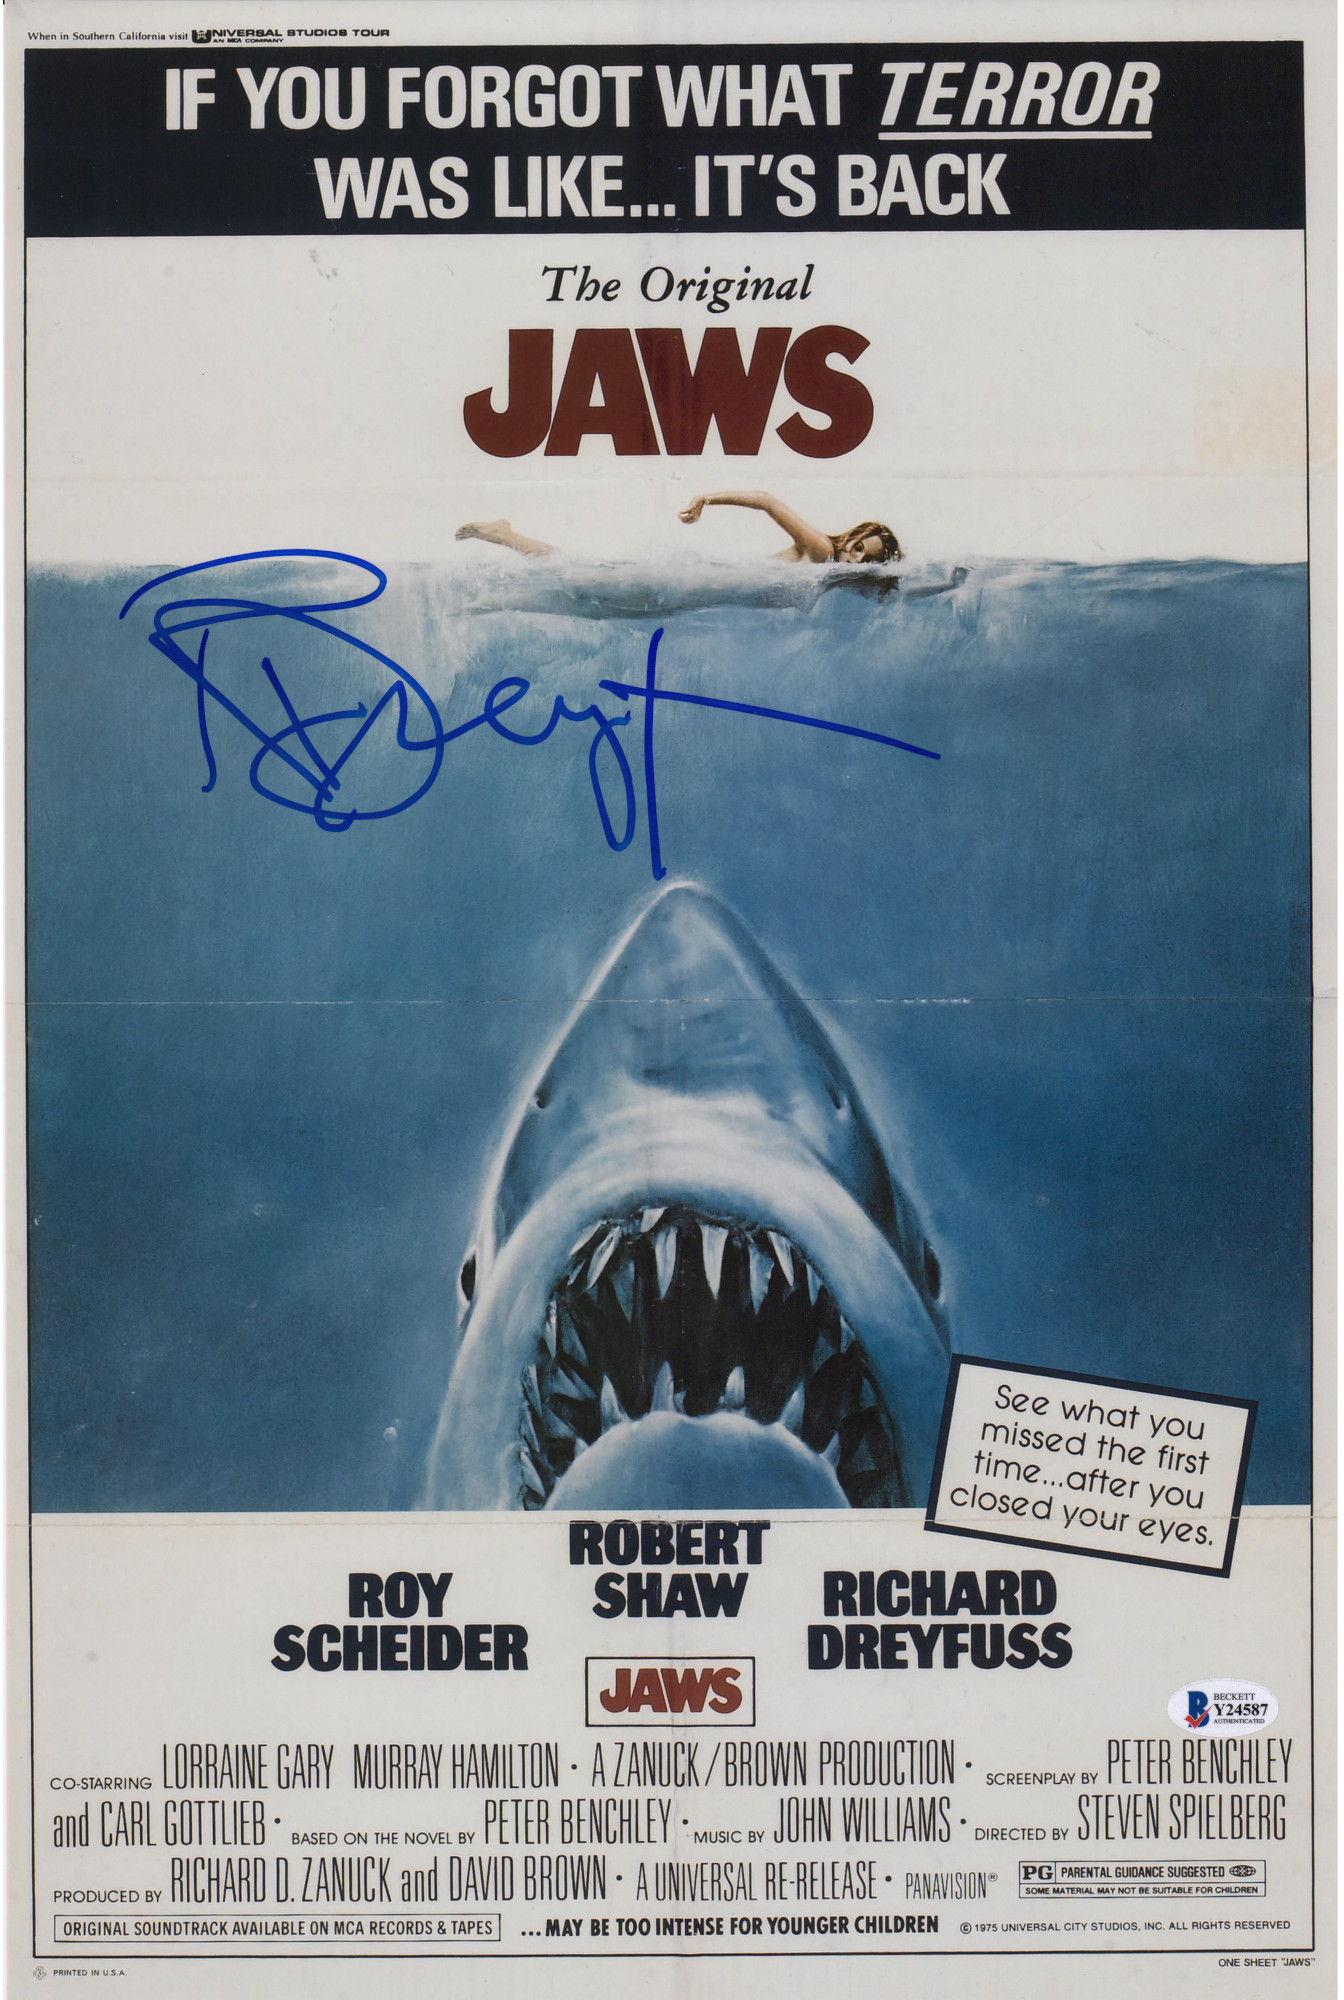 richard dreyfuss jaws autographed 11 x 17 movie poster